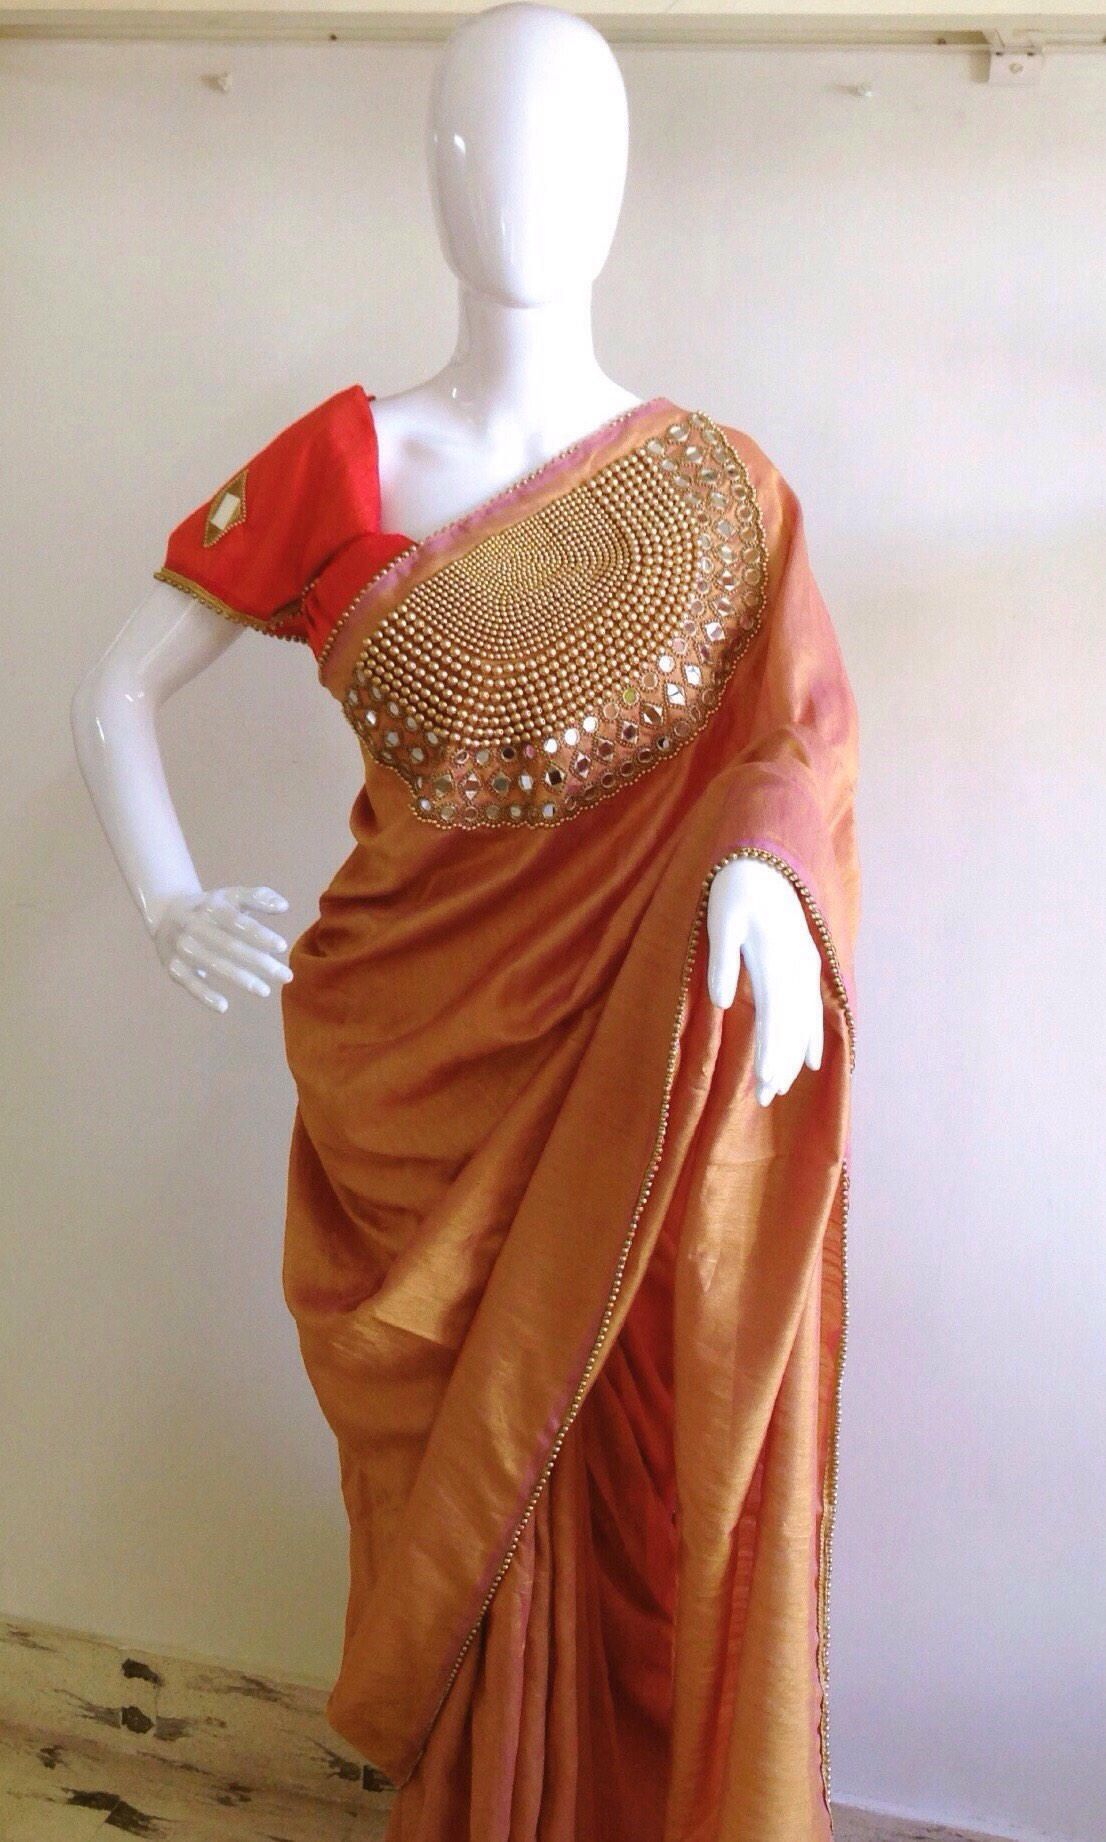 d8b7062522b592 Bronze gold semi raw silk saree with mirror and bead work with dark peach  orange mirror work blouse by GiaExquisiteIndian on Etsy